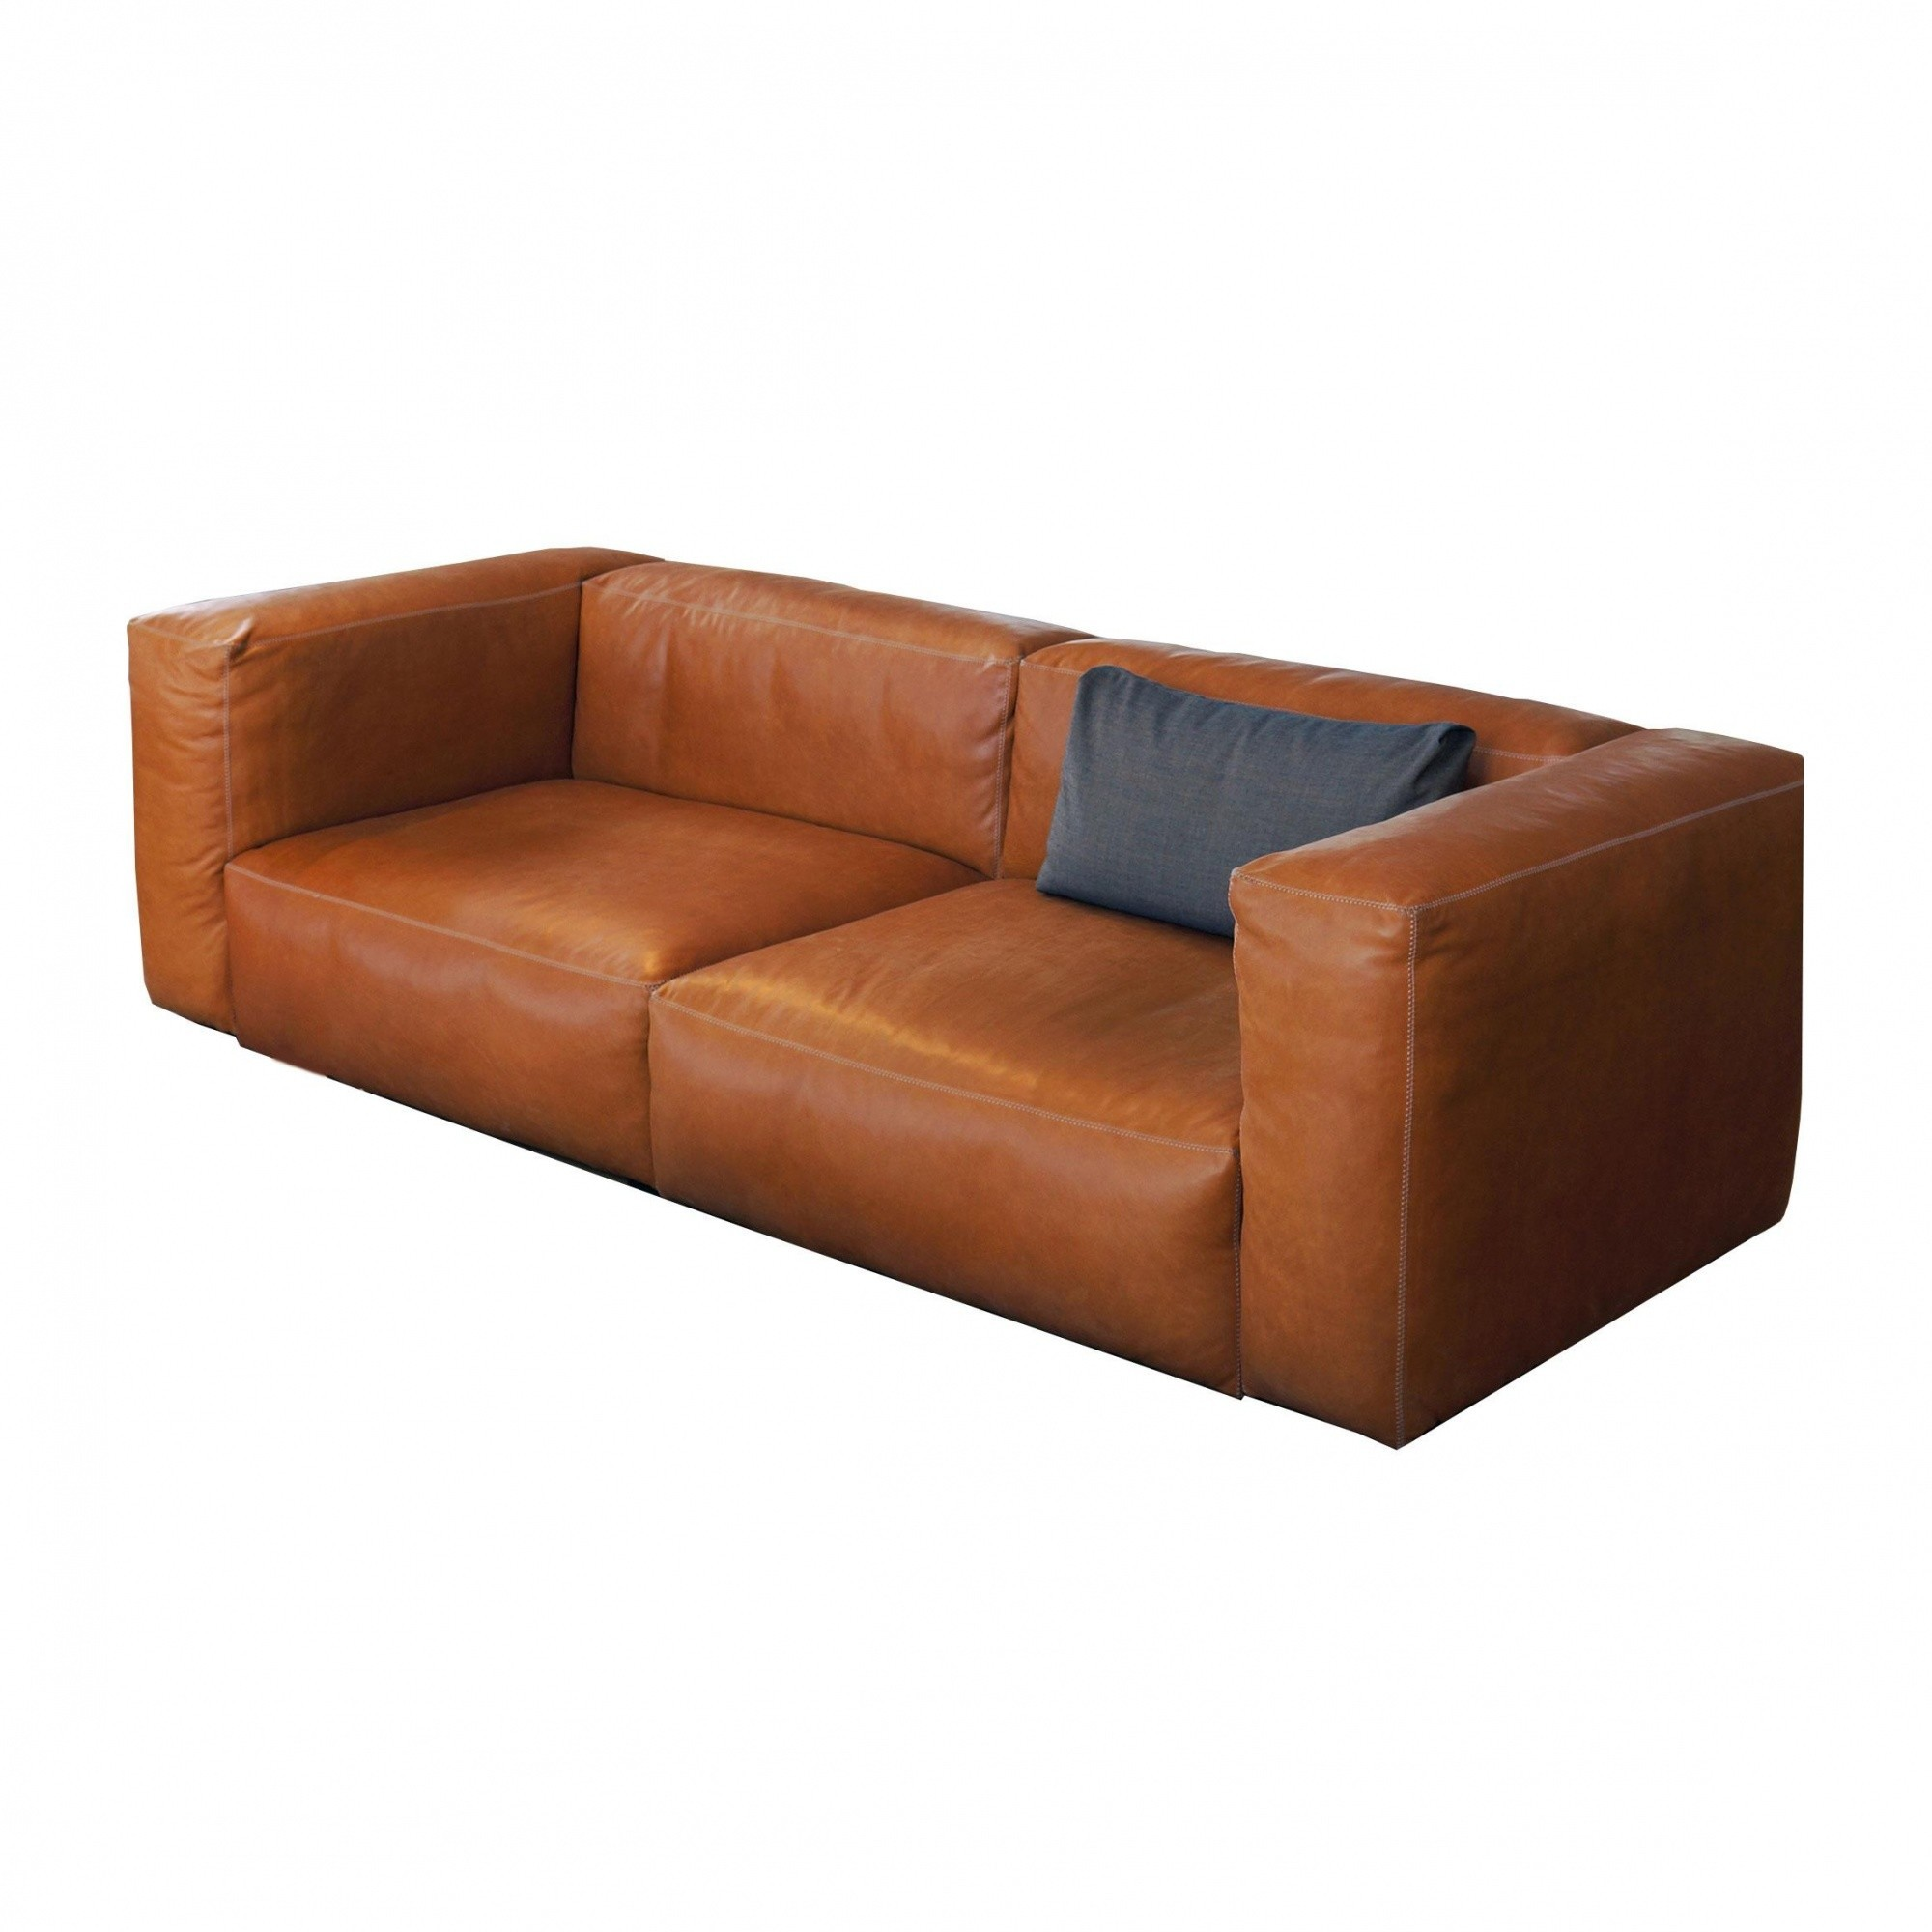 brown leather sofa on legs best budget sleeper hay mags soft 2 5 seater 228x95 5x67 ambientedirect 5cm cognac